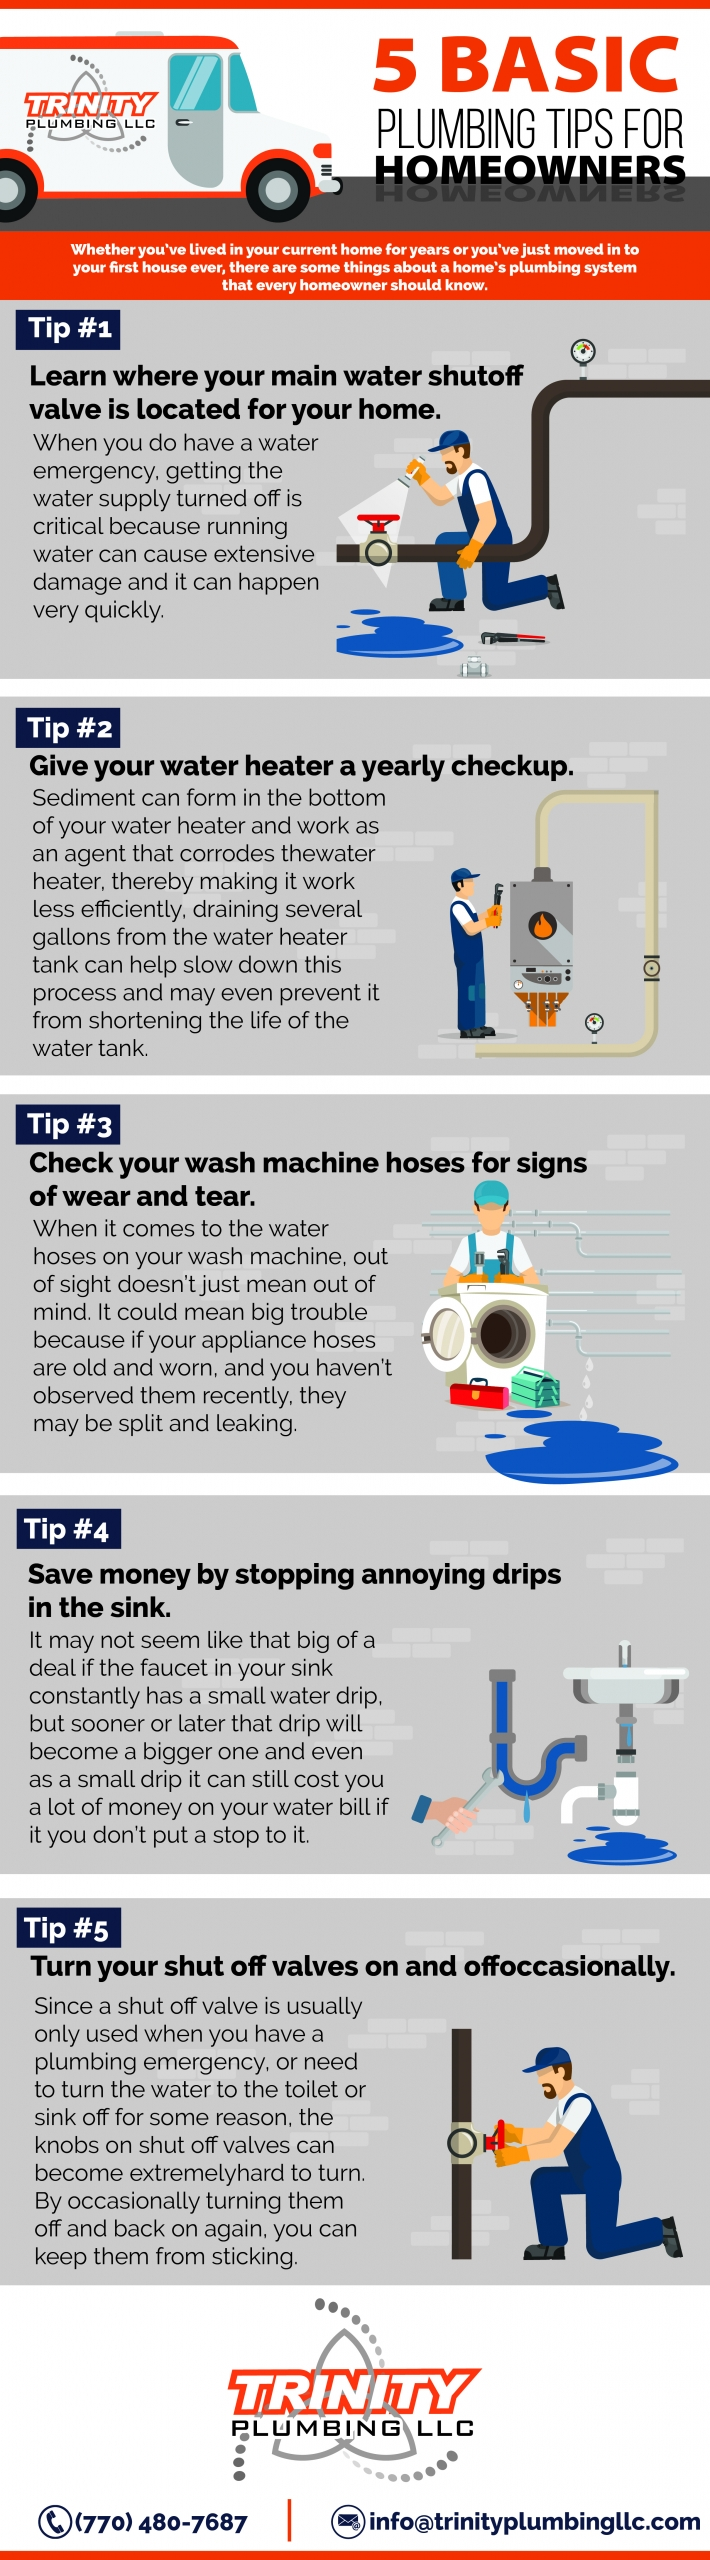 5 Basic Plumbing Tips For Homeowners Trinity Plumbing Commercial Residential Plumber